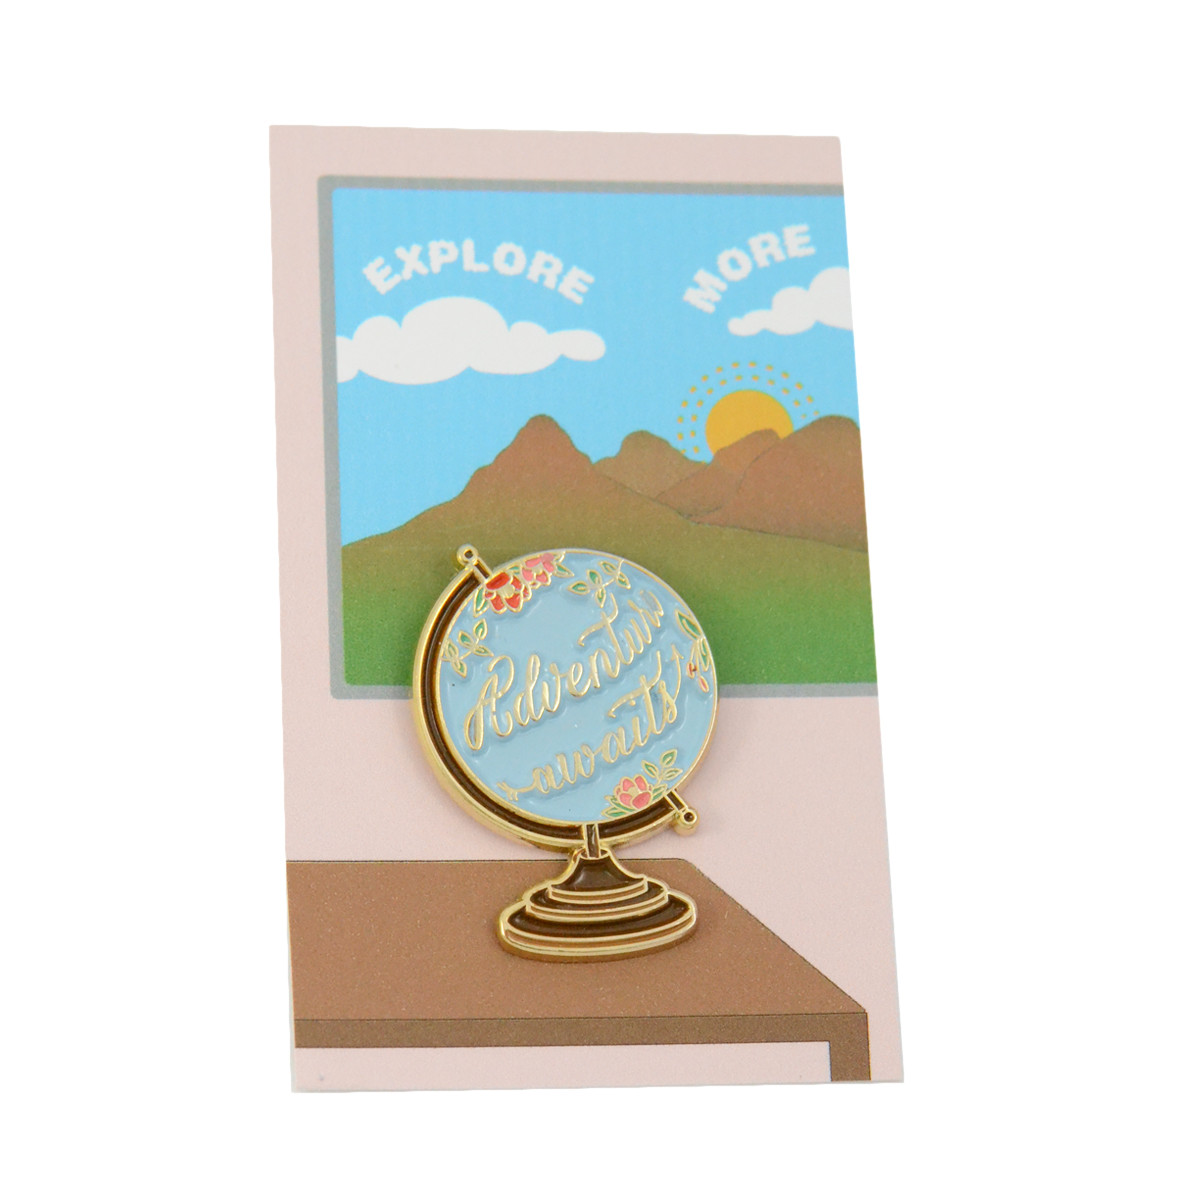 adventure awaits pin on card